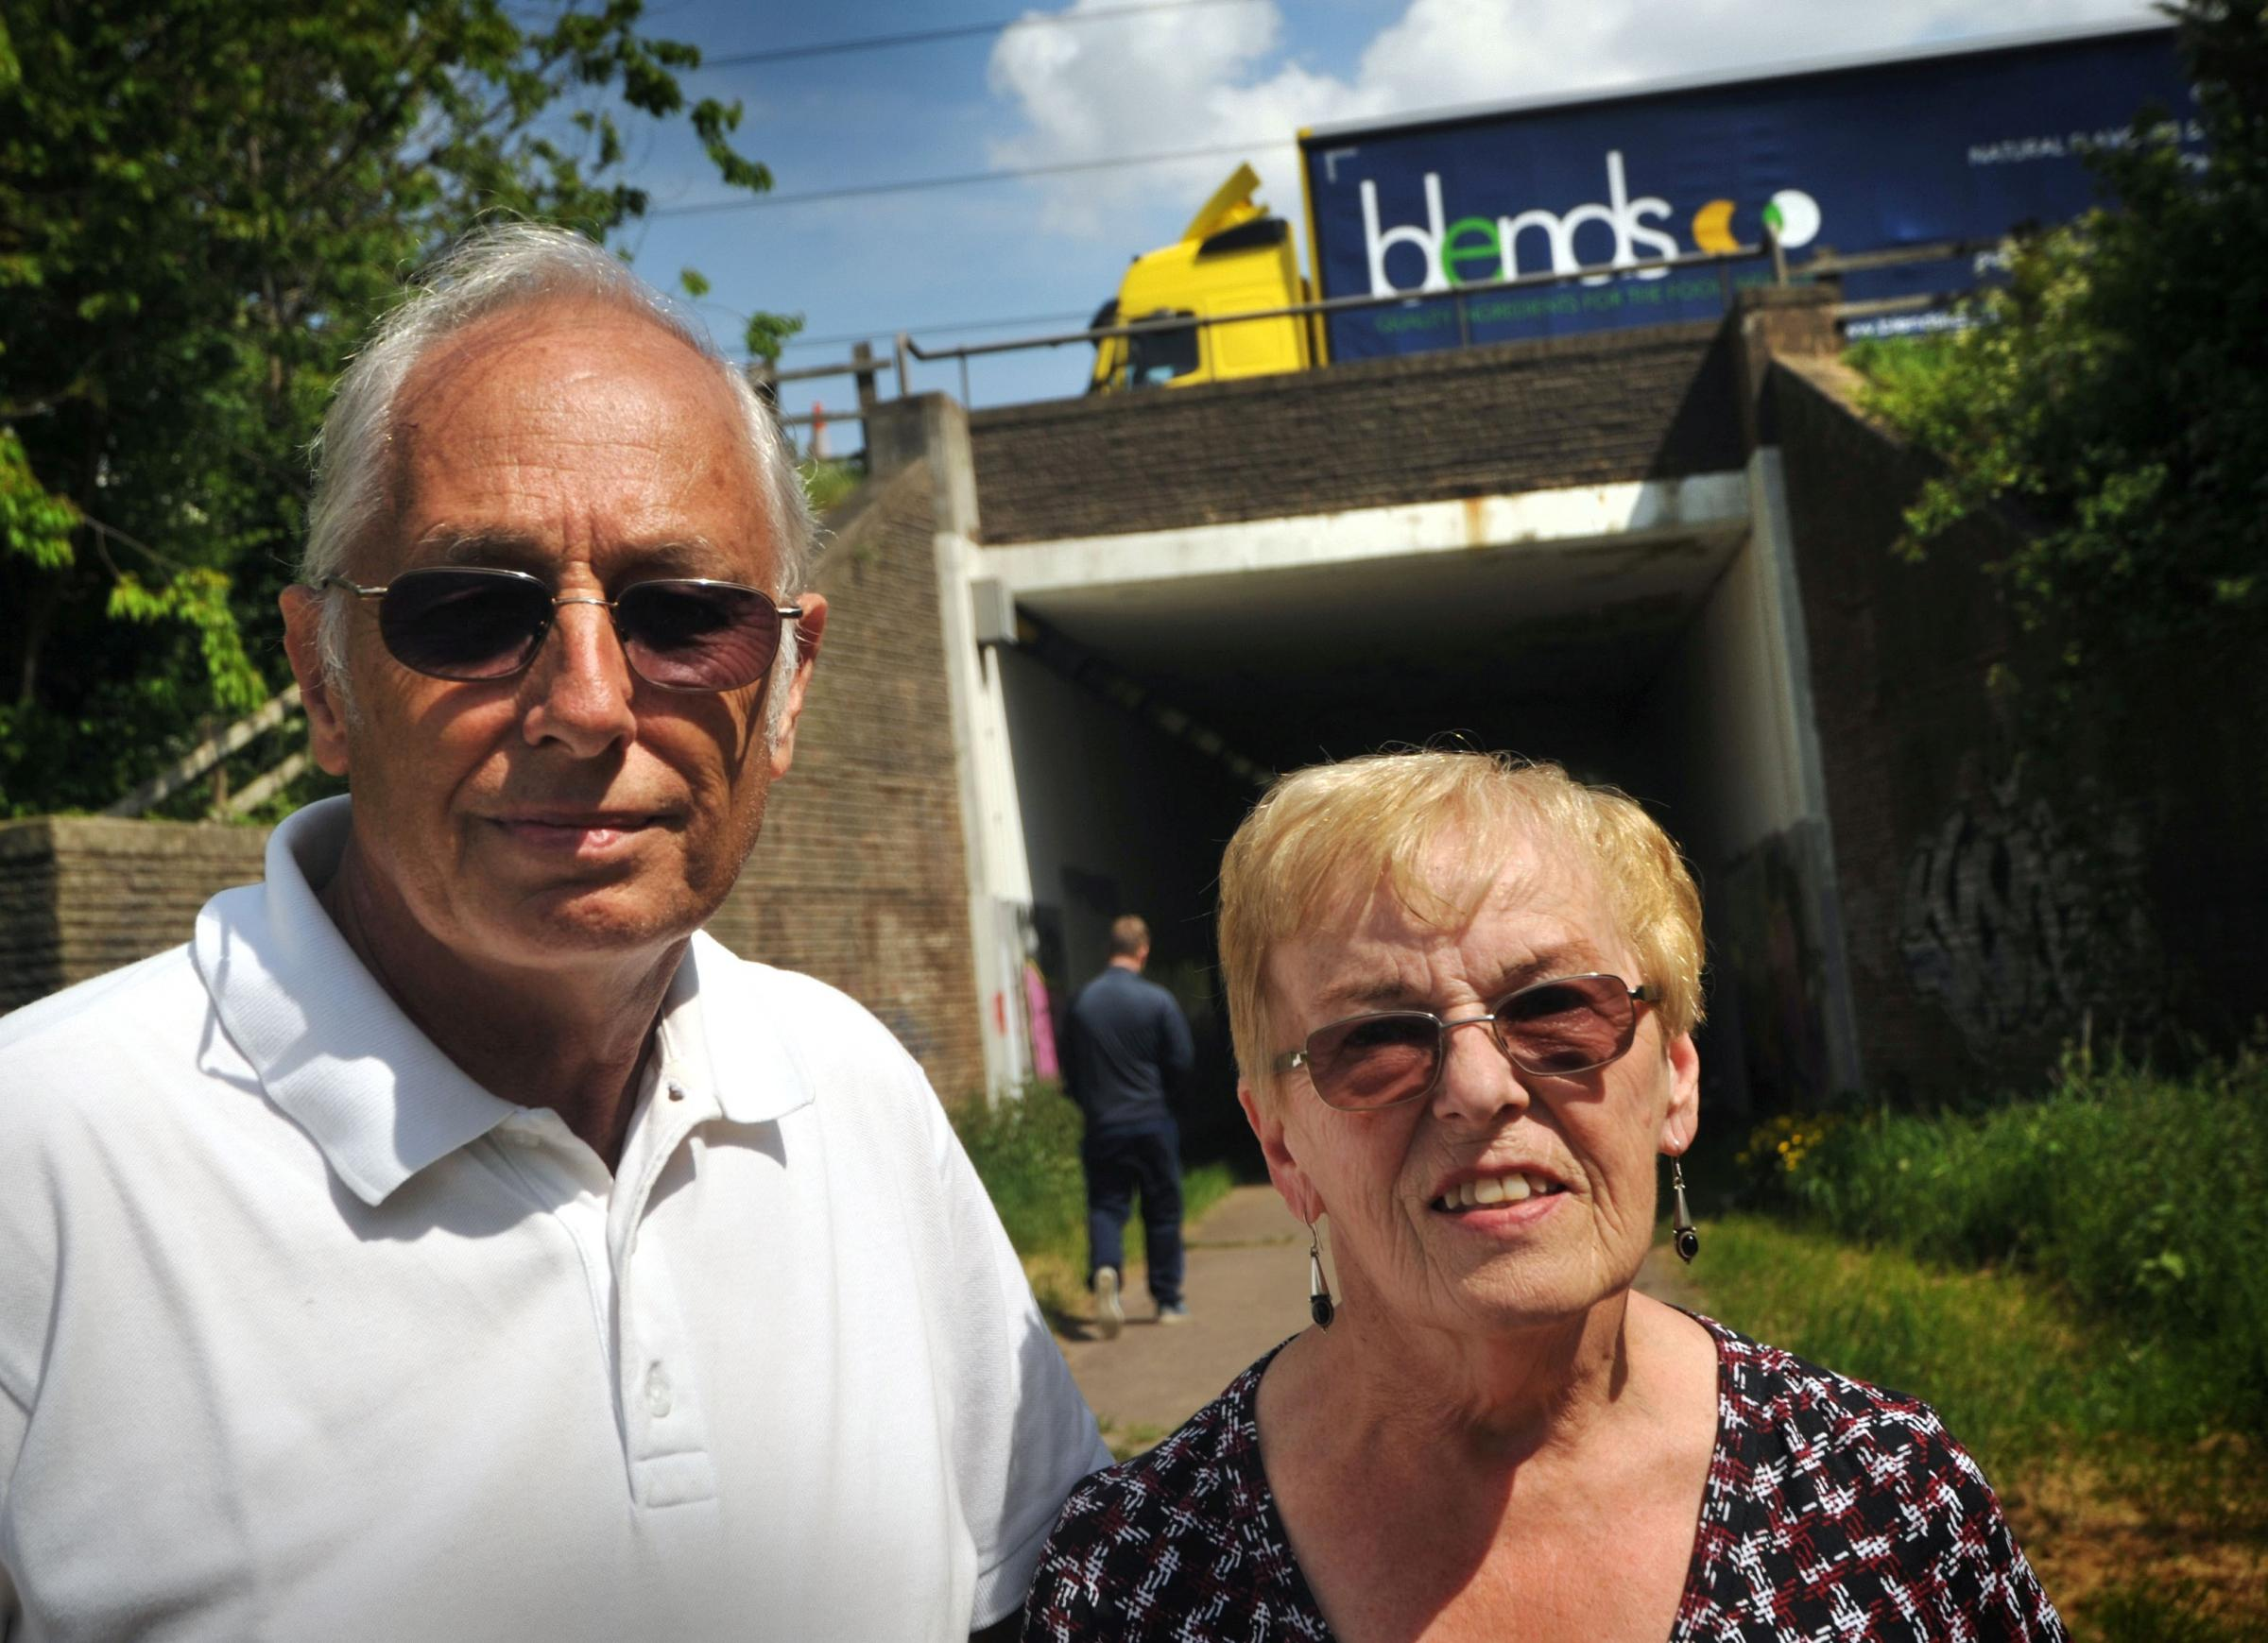 We want fencing: Paul and Rose Edmonds at the M5 motorway underpass.